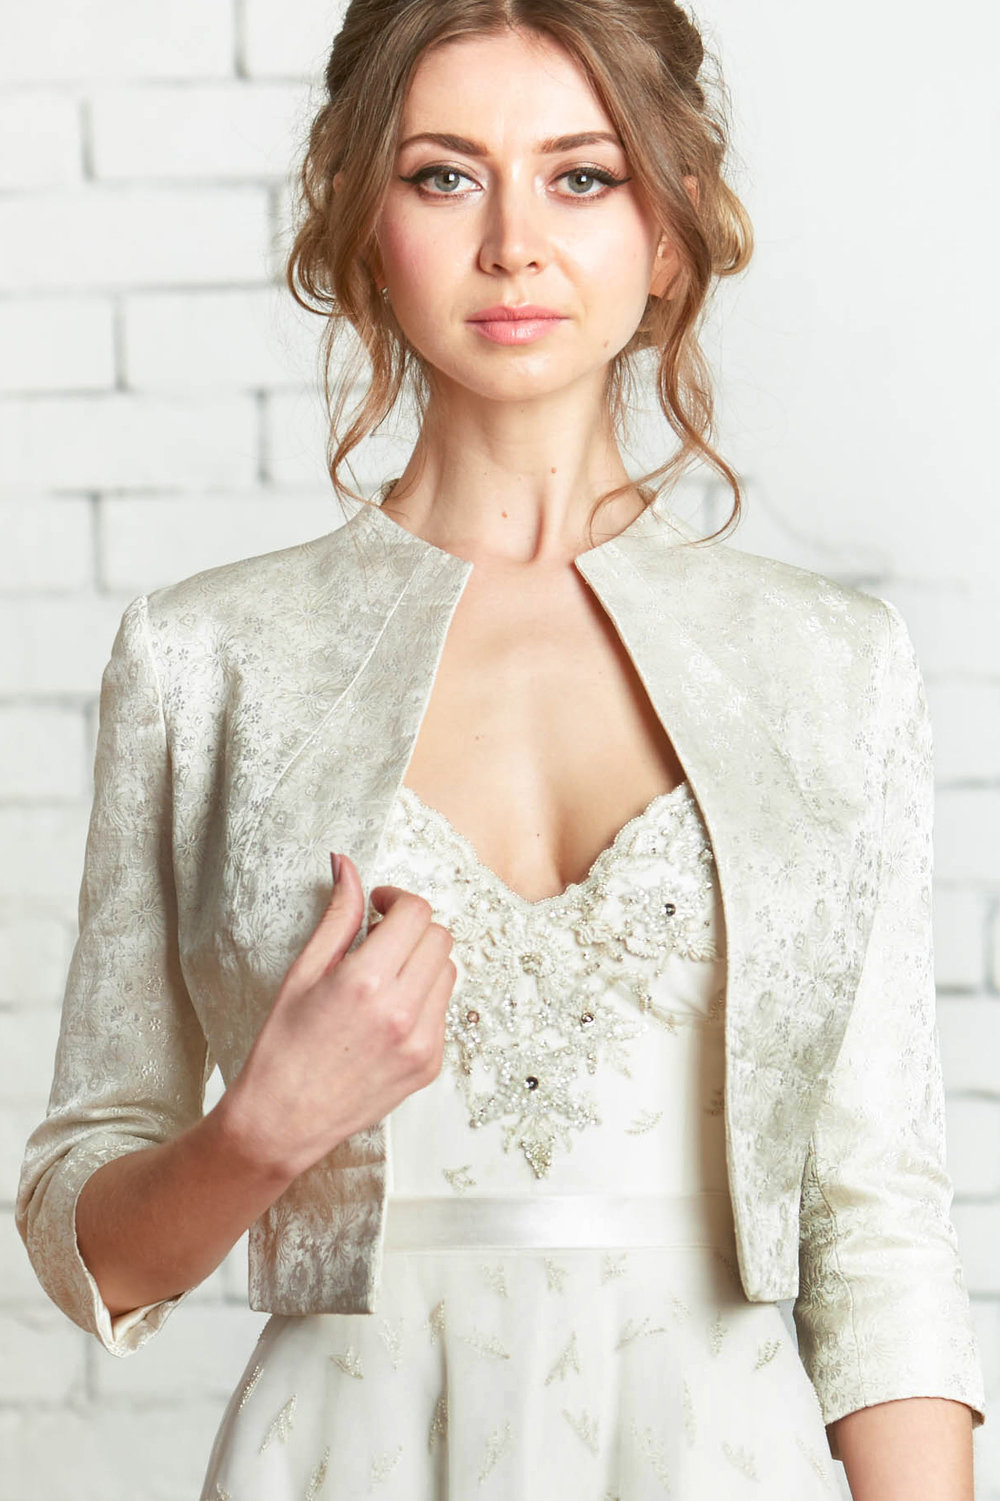 ValenciaJacket-1front_Jacquard_Wedding_Coverup_Chic_Modern_Bride.jpg